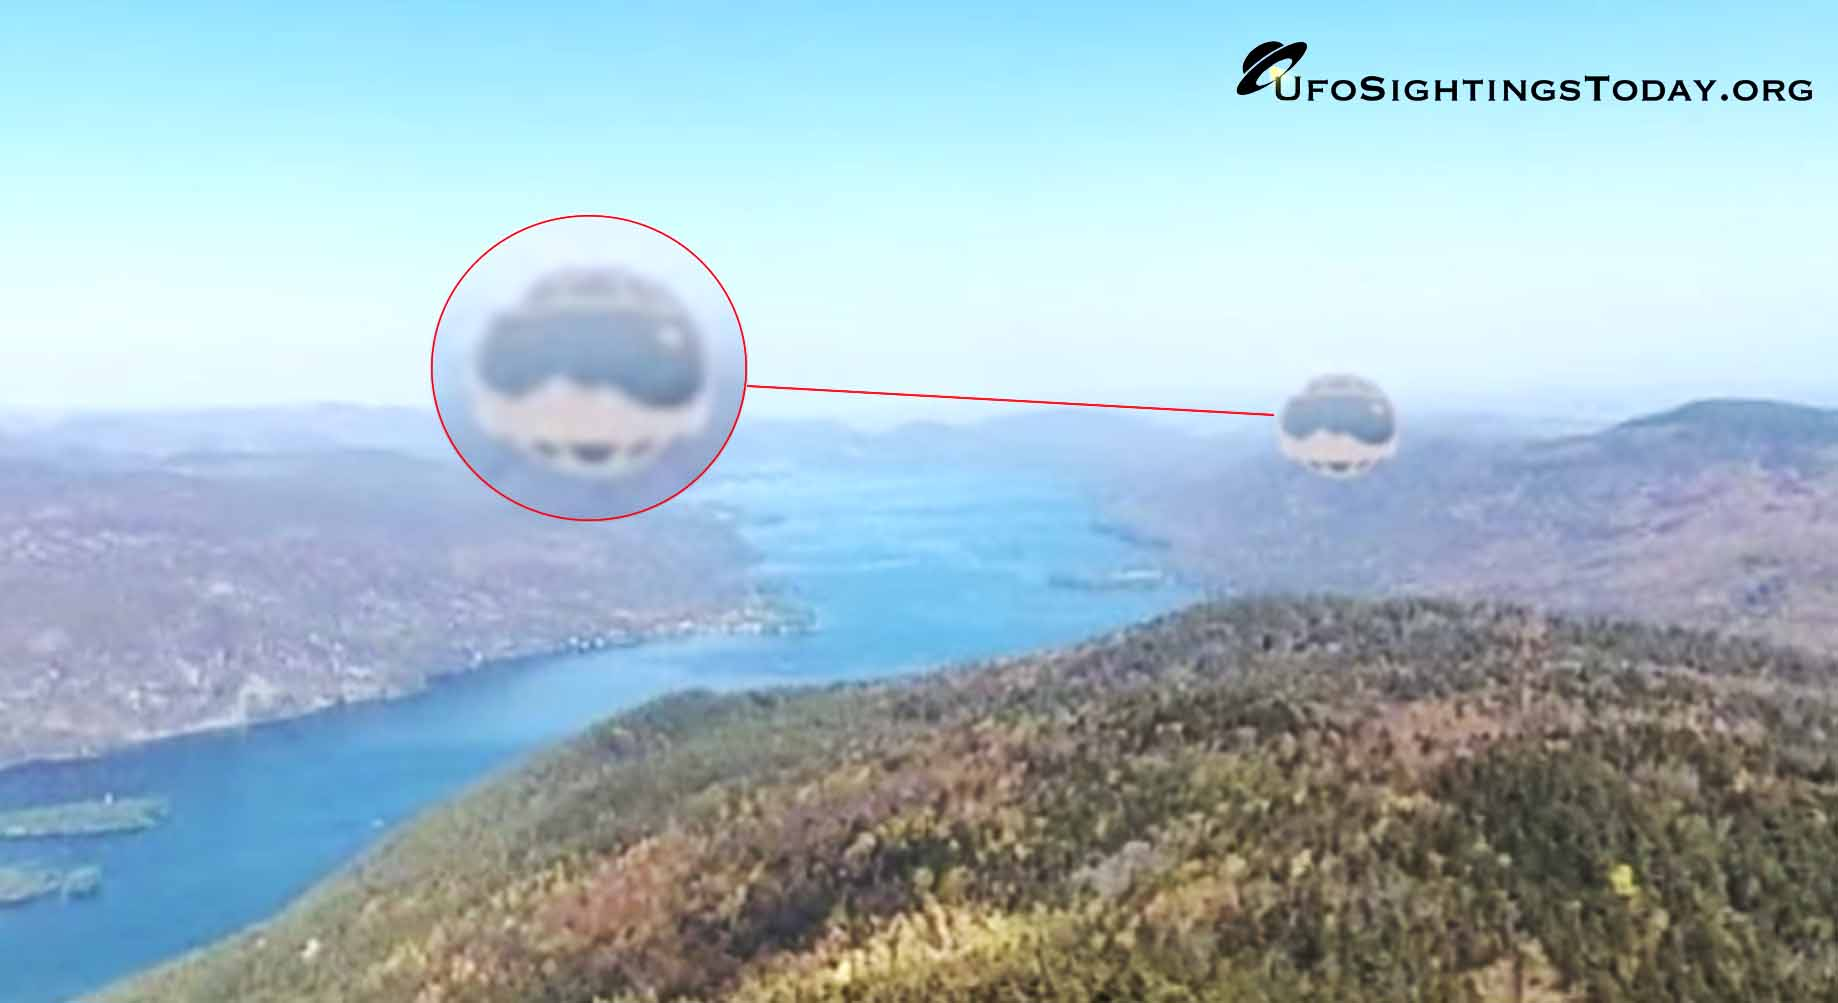 spherical ufo sighted on google maps